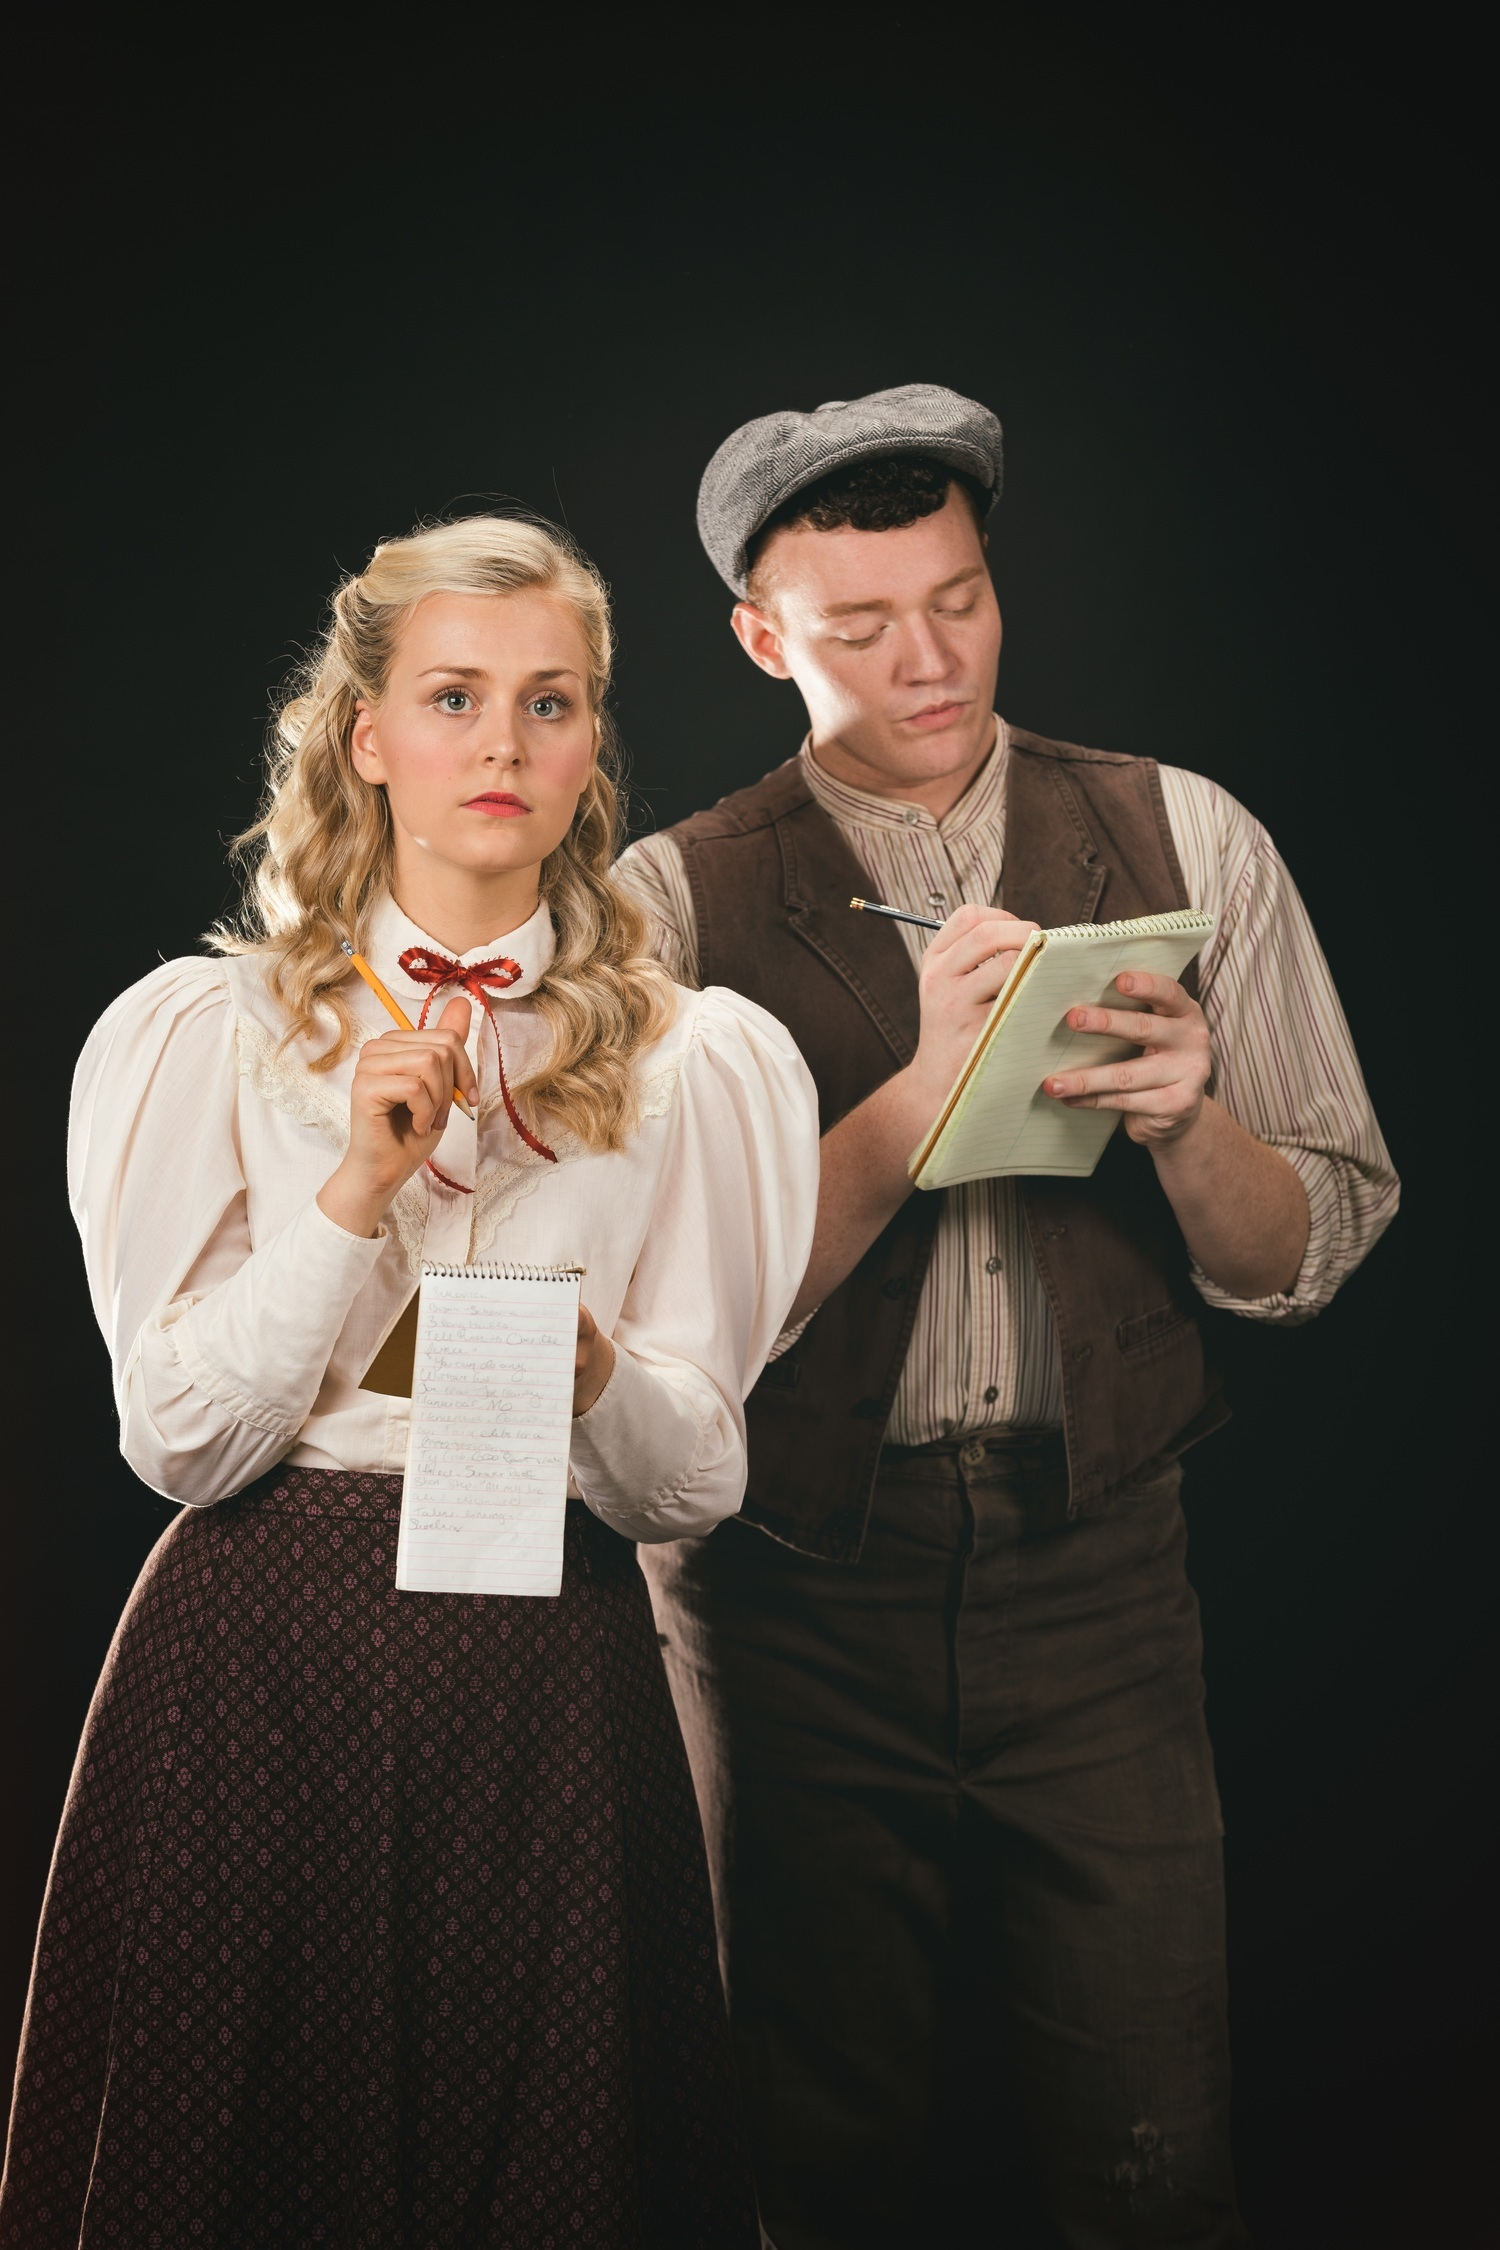 BWW Review: Earthbound NEWSIES Charms With Punk Hero and Youthful Fervor